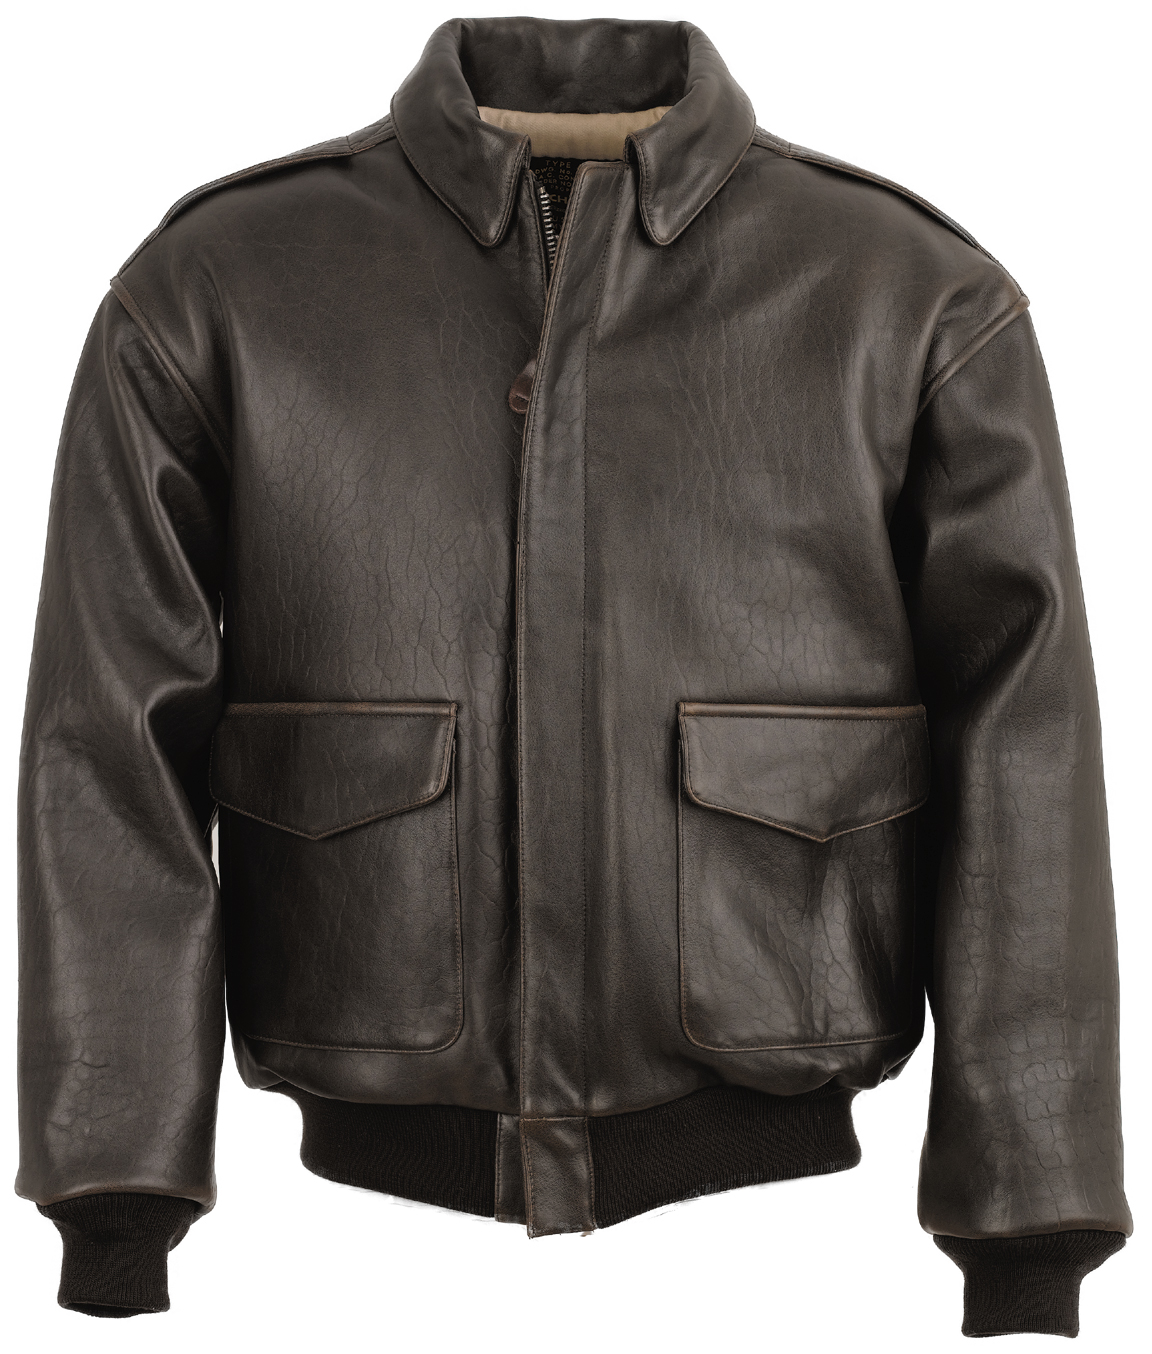 Schott N.Y.C. A2SM A-2 Leather Flight Jacket